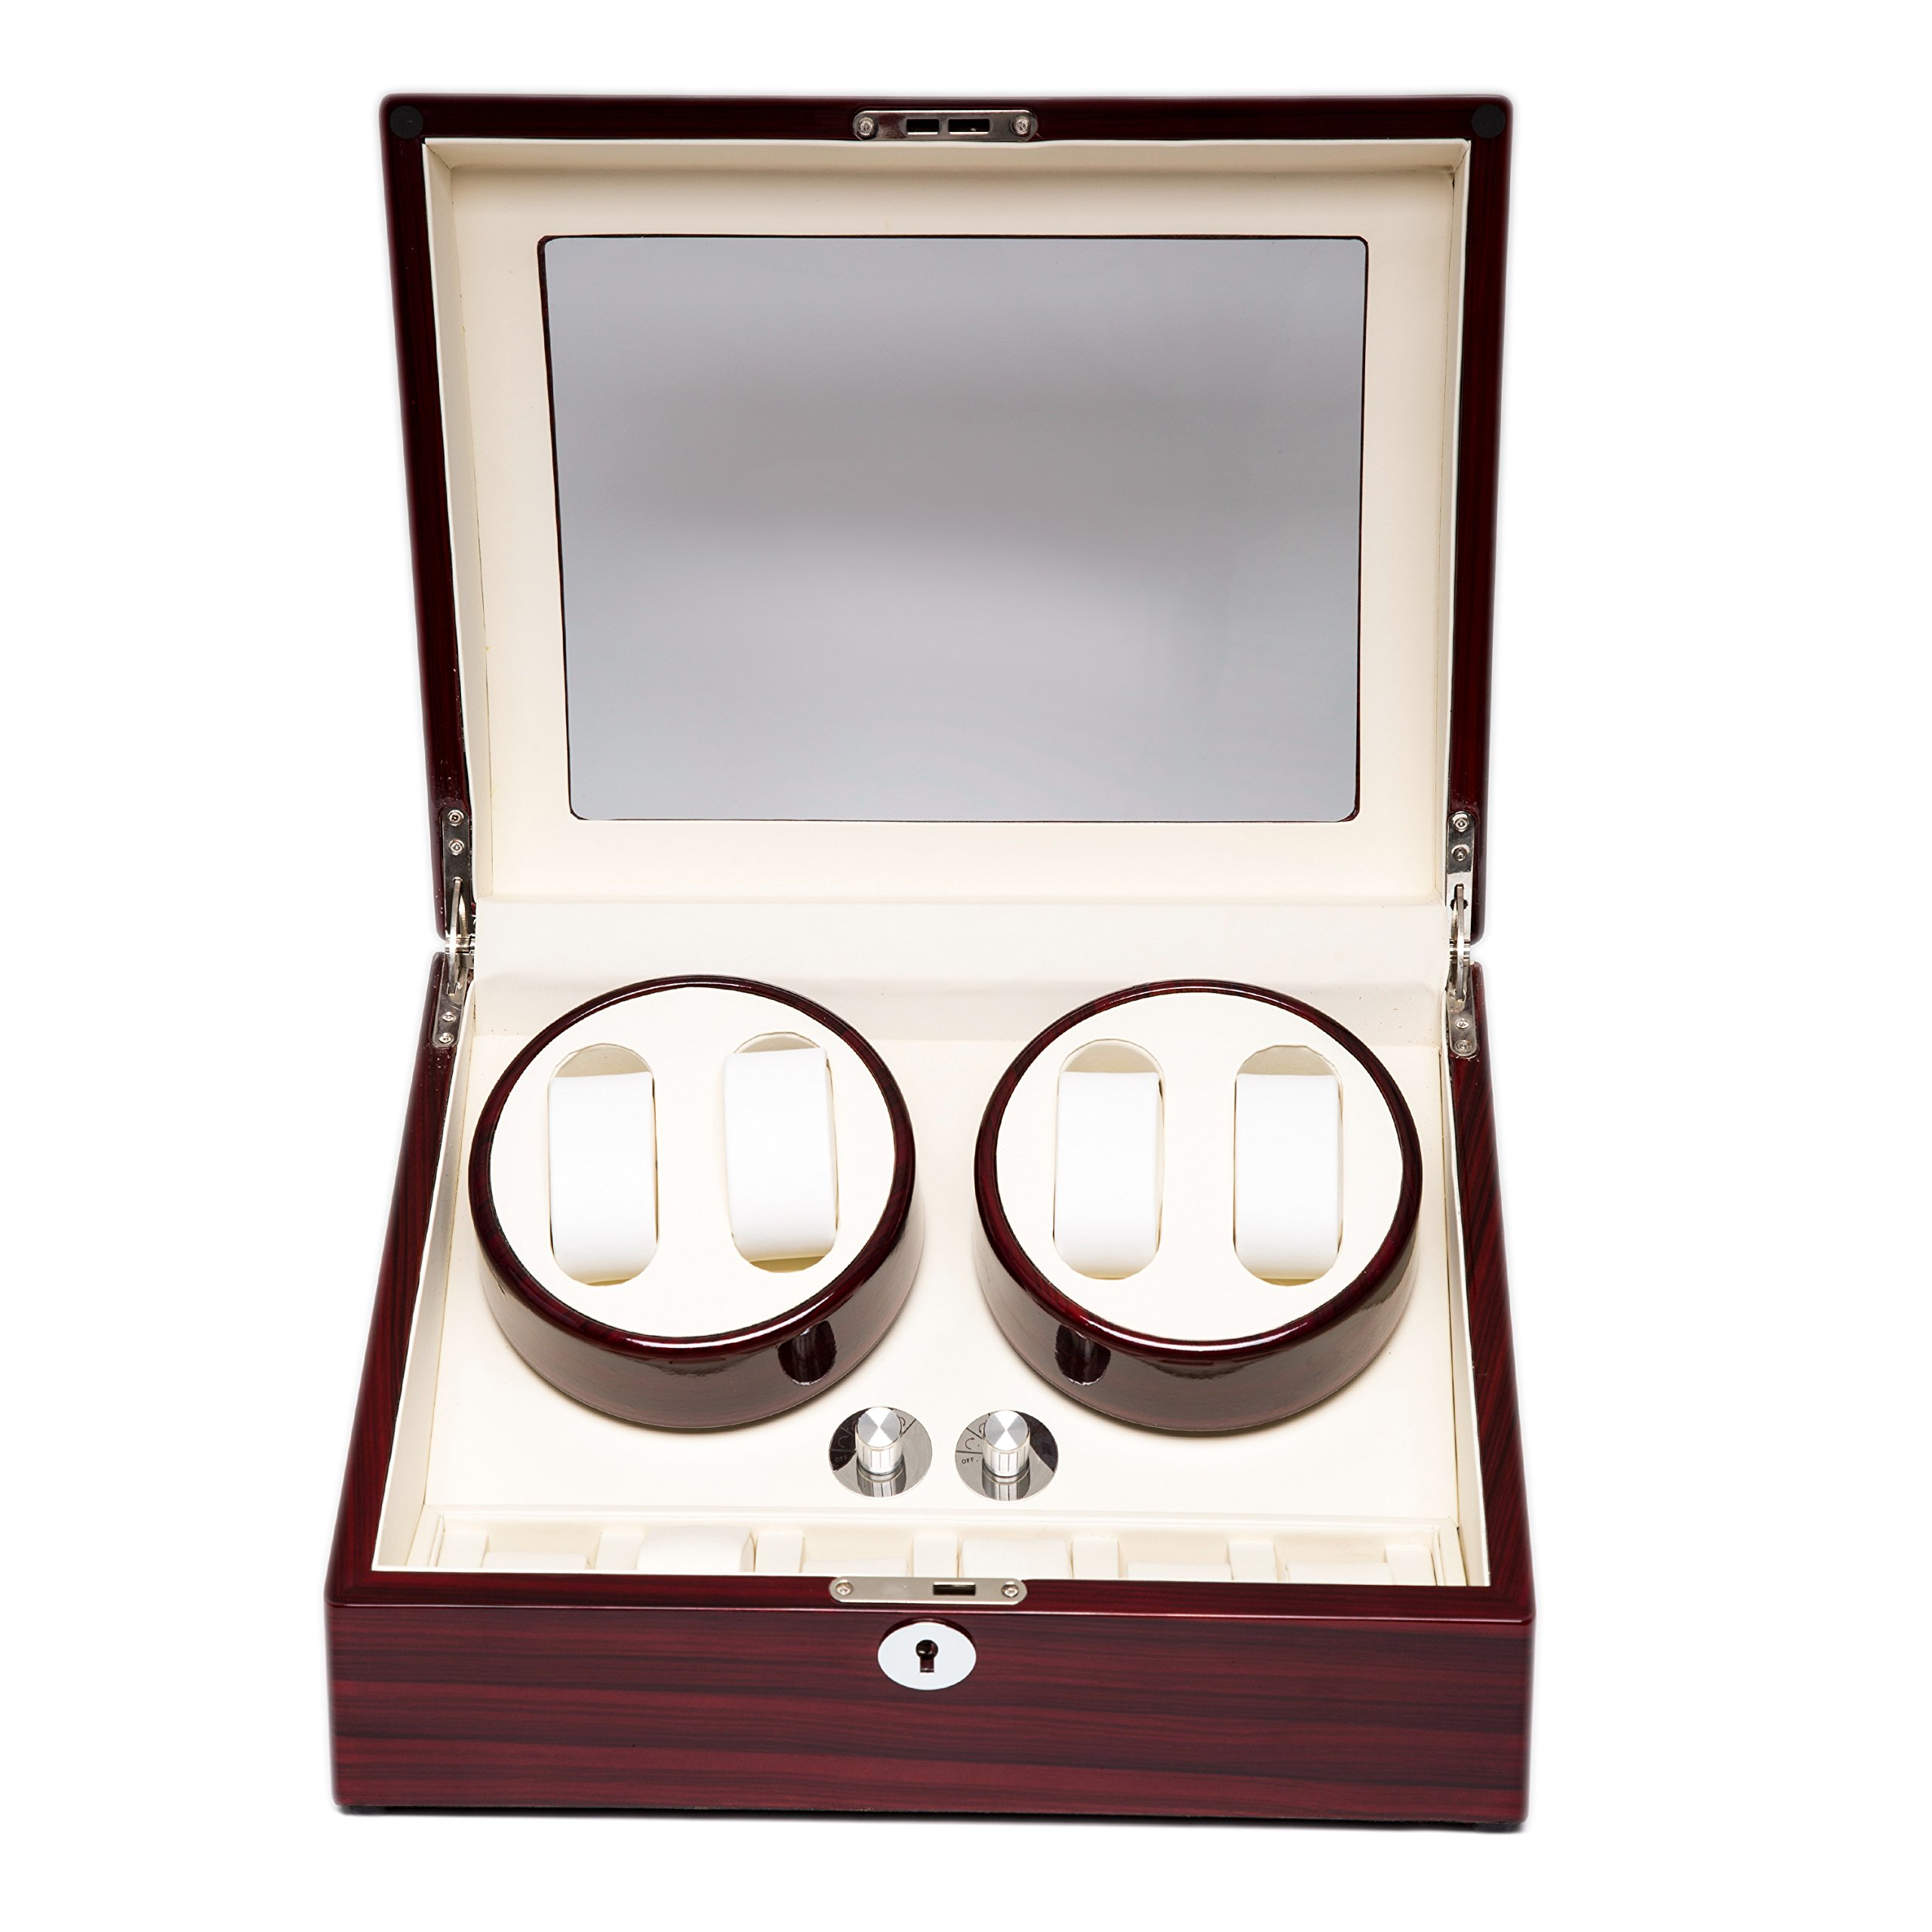 Wood 4+6 Watch Winder Mens Watches Box Storage Display Automatic Rotation Jewelry Case Organizer